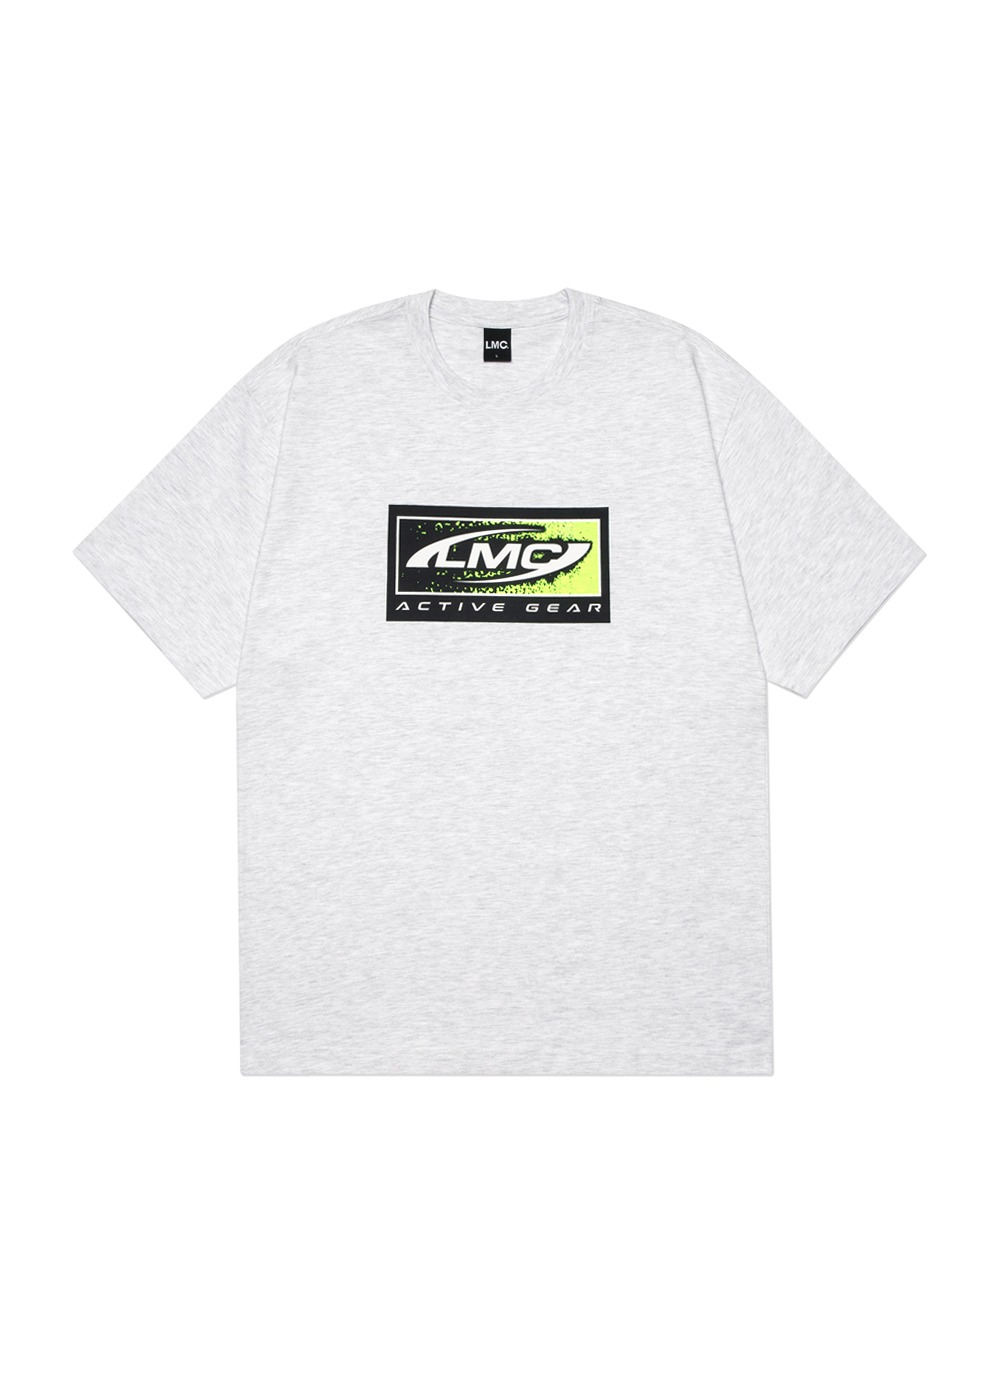 LMC BOX ACTIVE GEAR TEE lt. heather gray